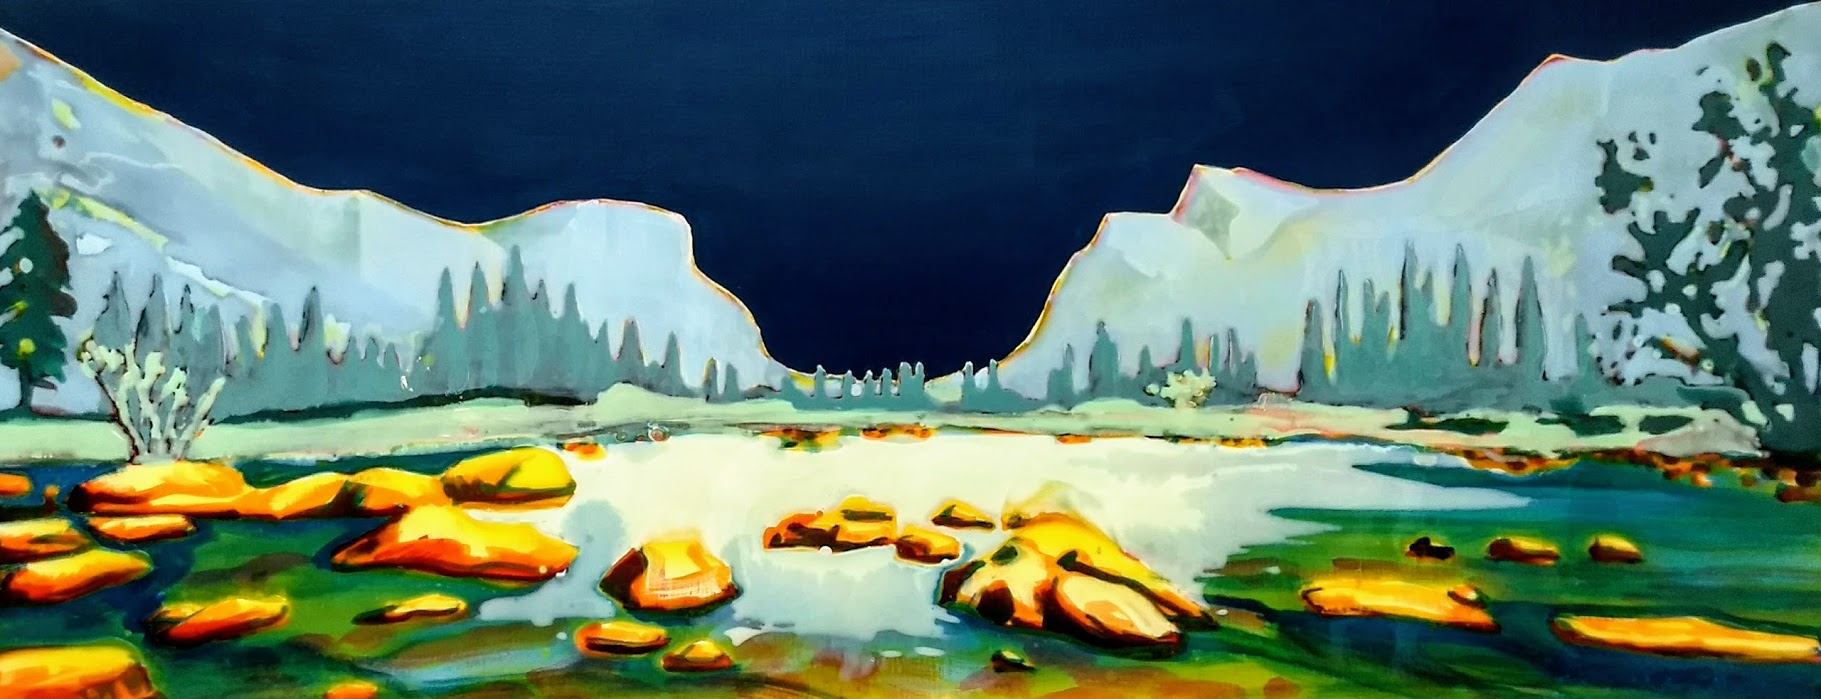 YOSEMITE  acrylic and epoxy on canvas 60 x 150 cm  Sold